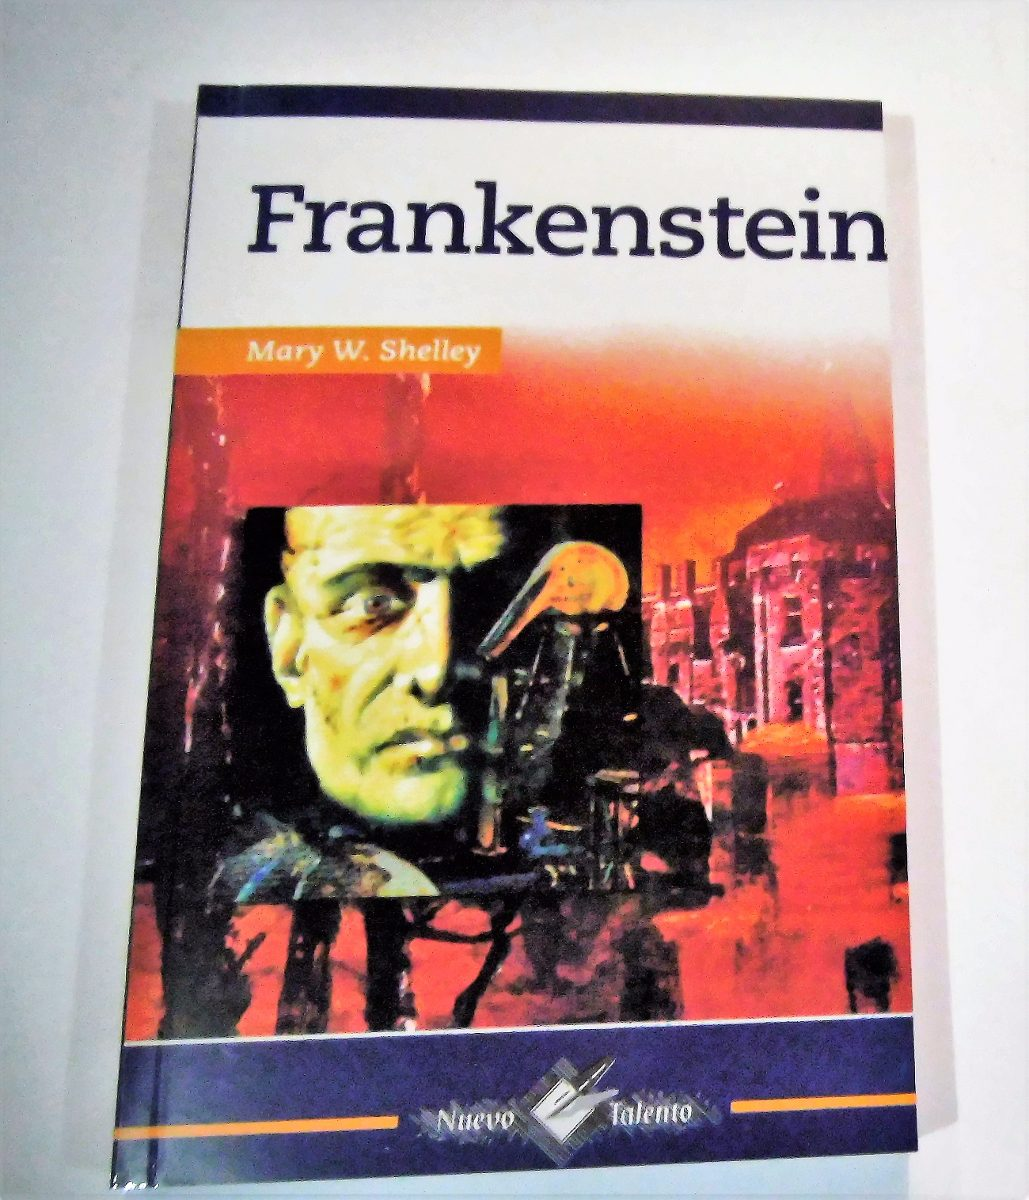 Frankenstein Libro Frankenstein Mary W Shelley 150 00 En Mercado Libre